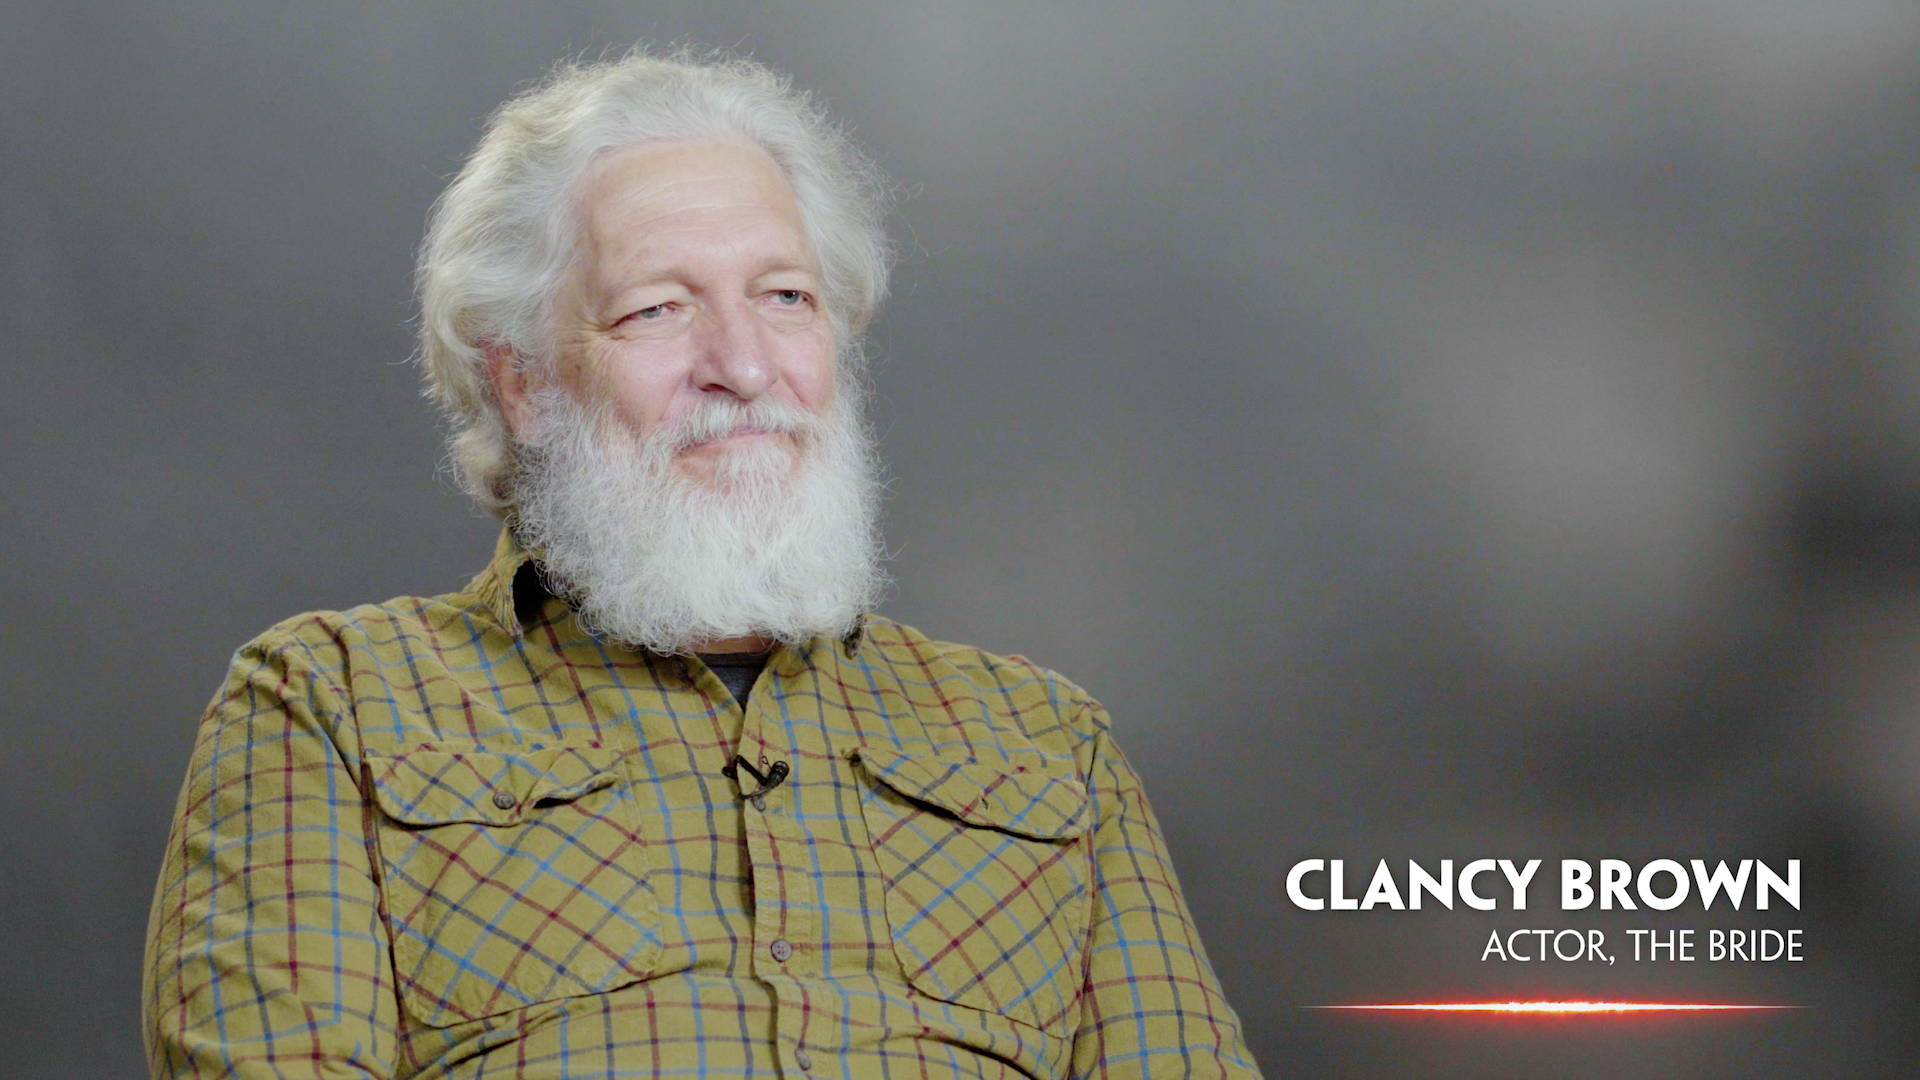 In Search of Darkness Part II: Clancy Brown interview